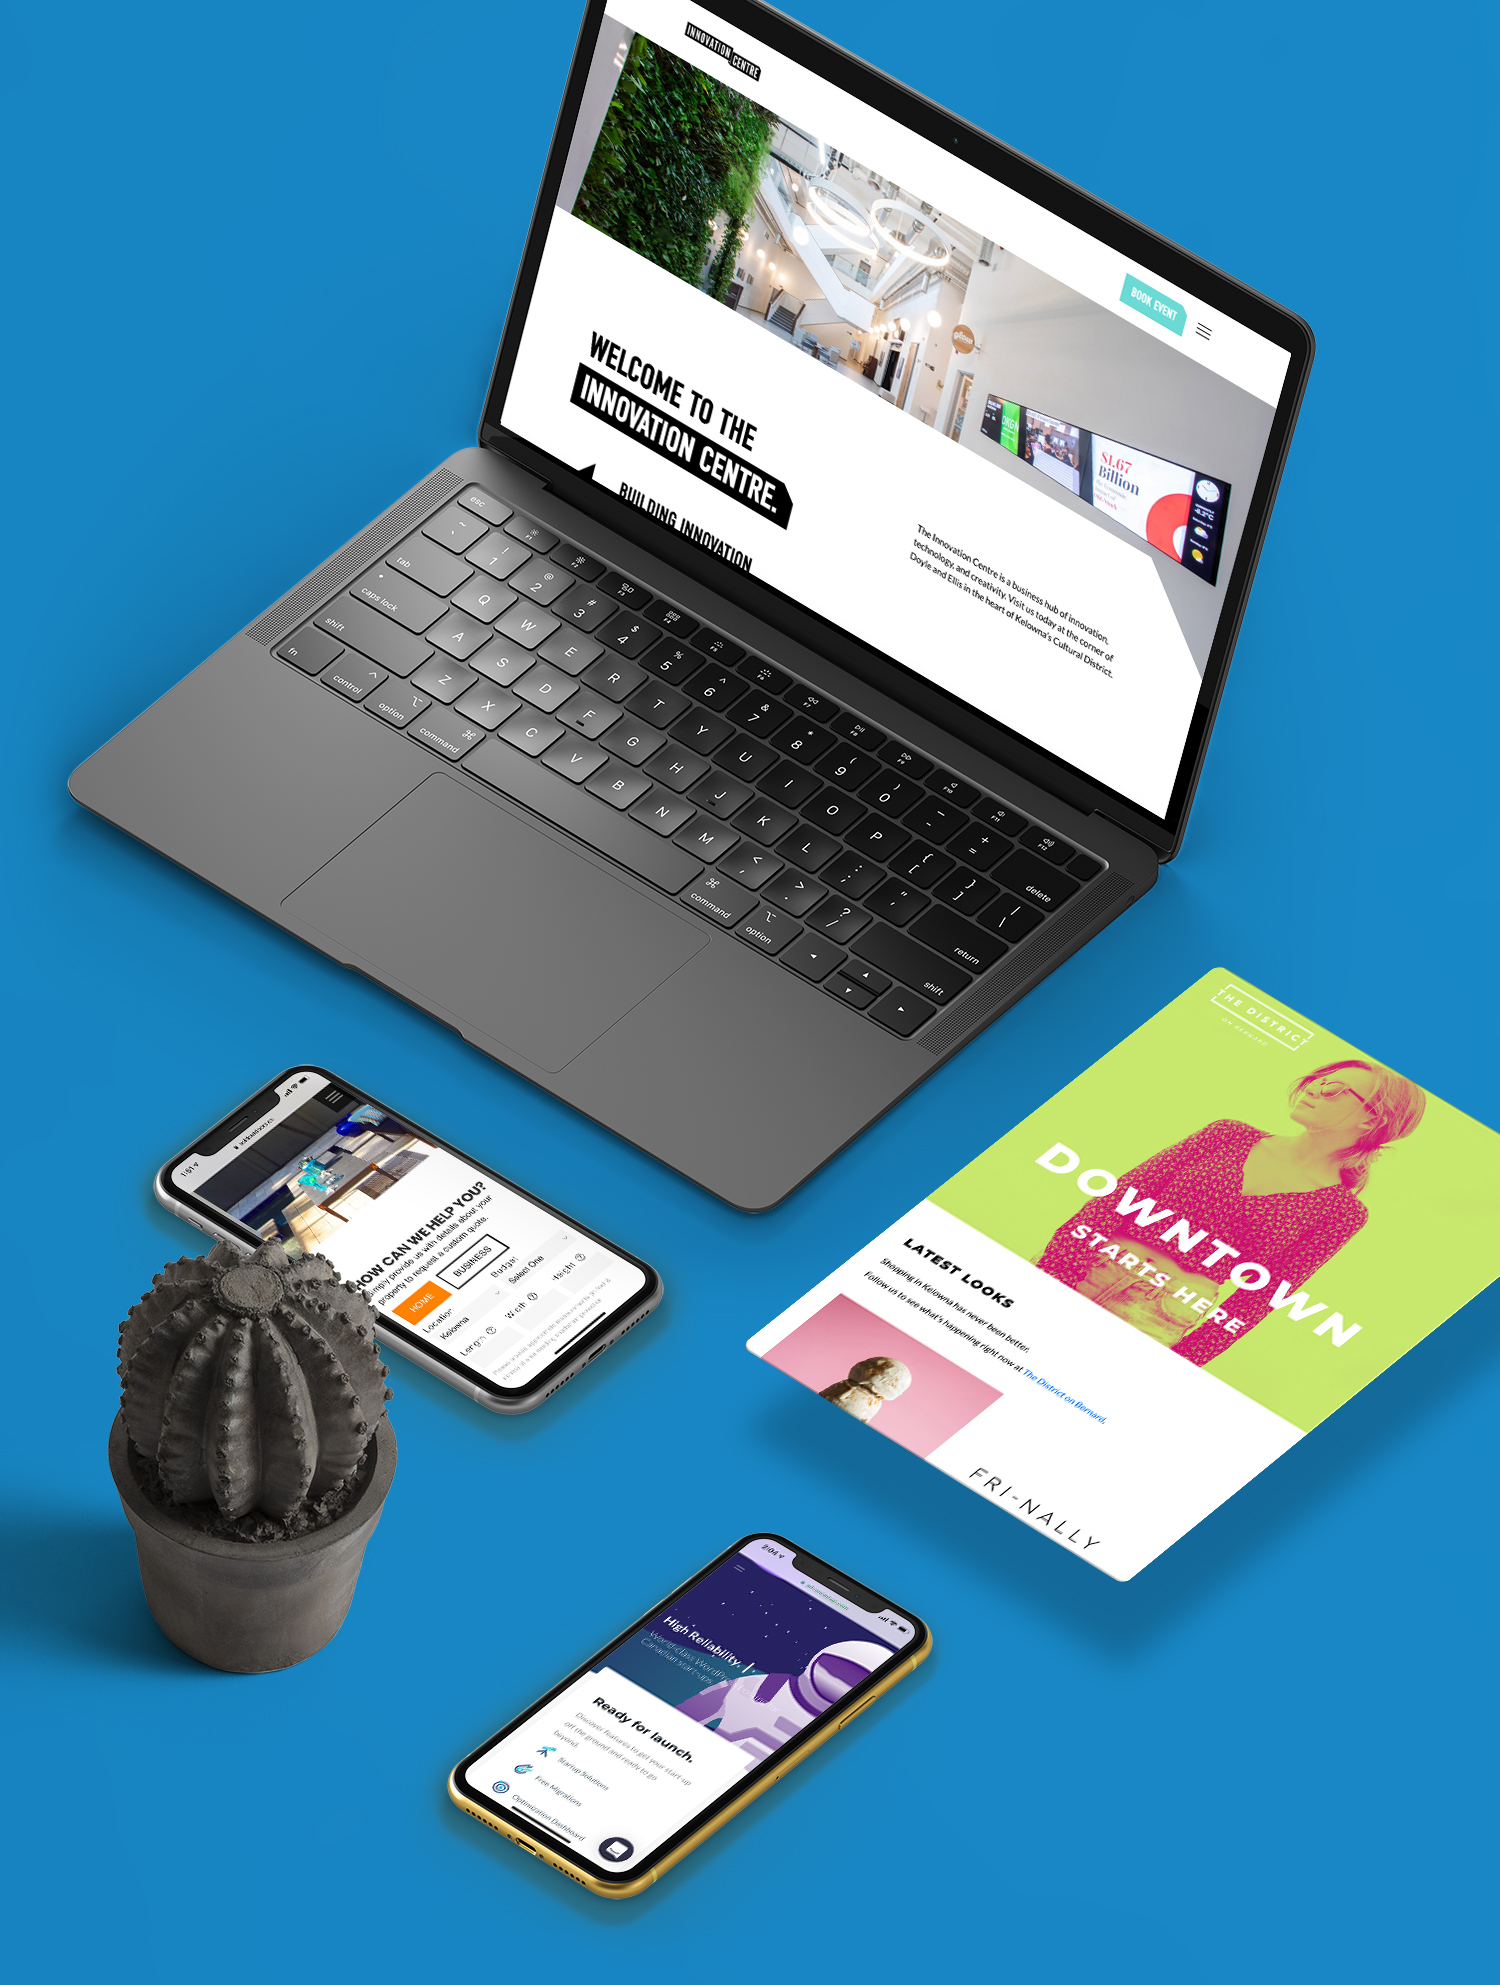 Twirling Umbrellas Web Design Mockups on a laptop and mobile phones with a blue background